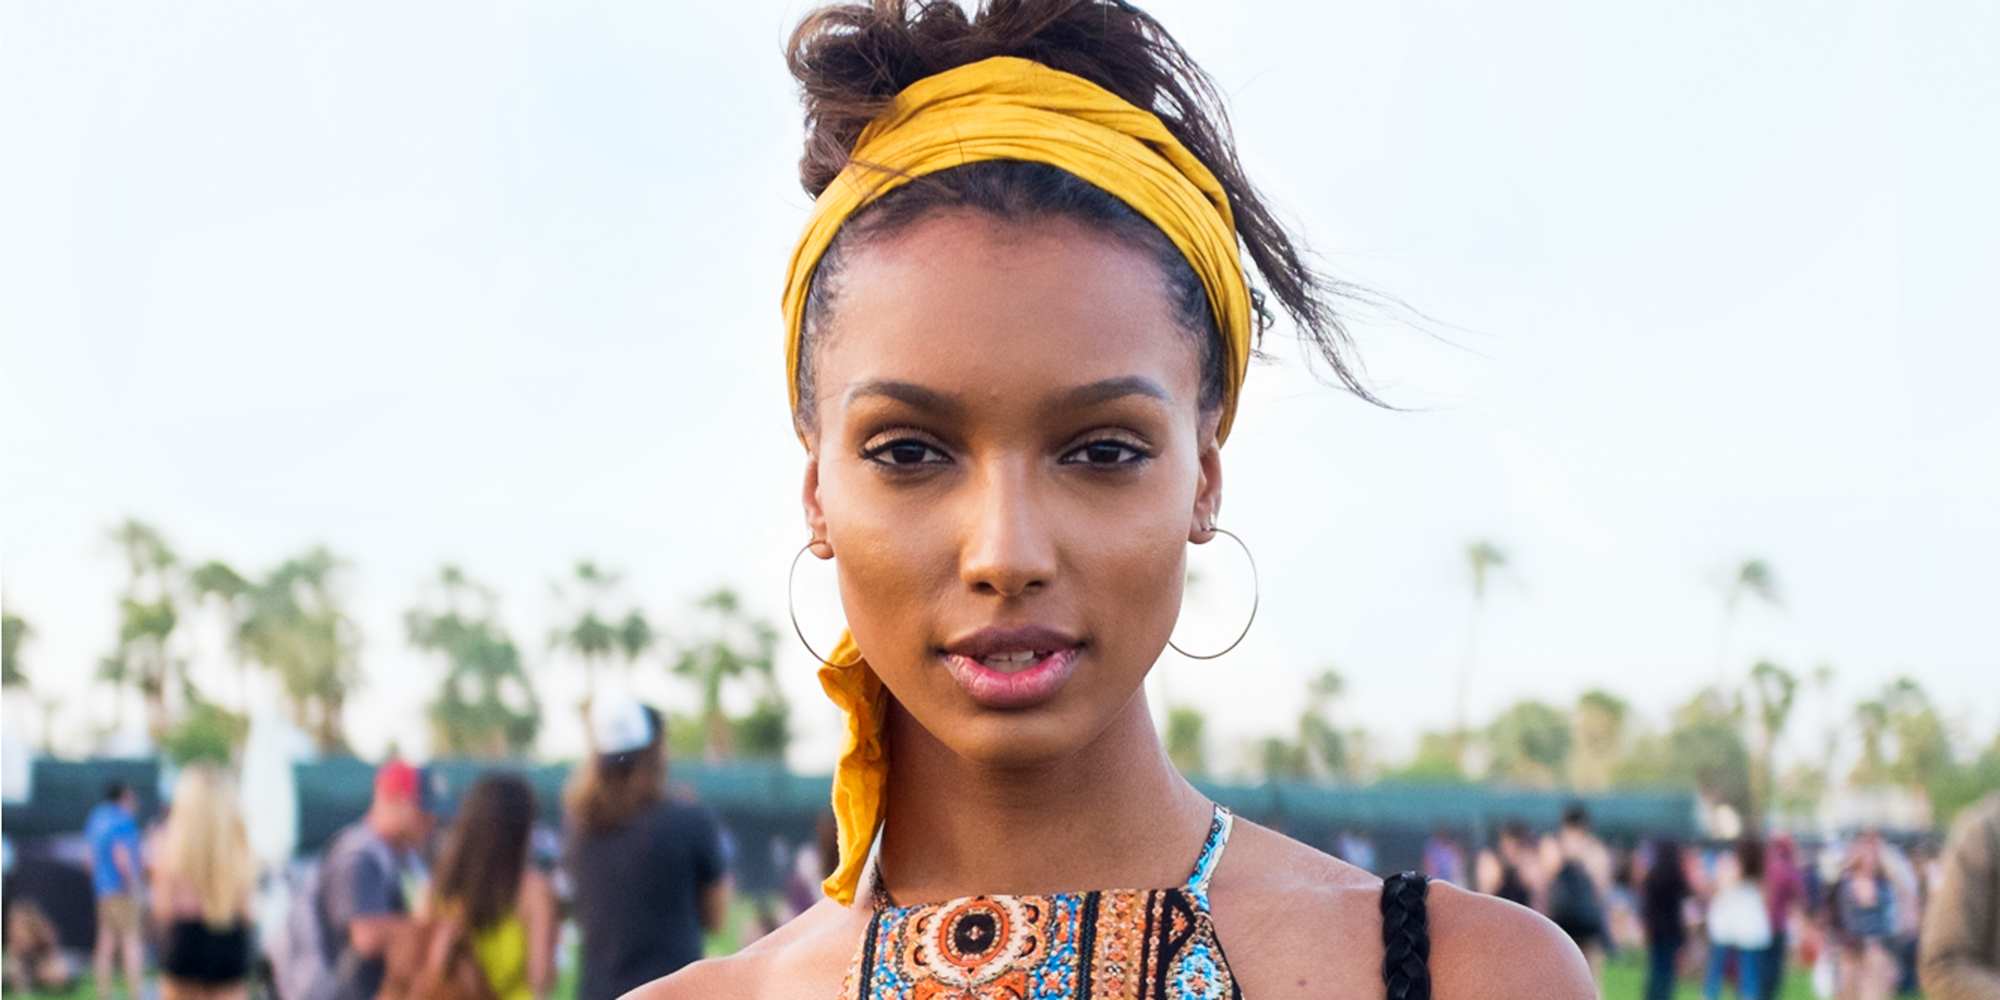 1461005084-elle-coachella16-day1-046crop